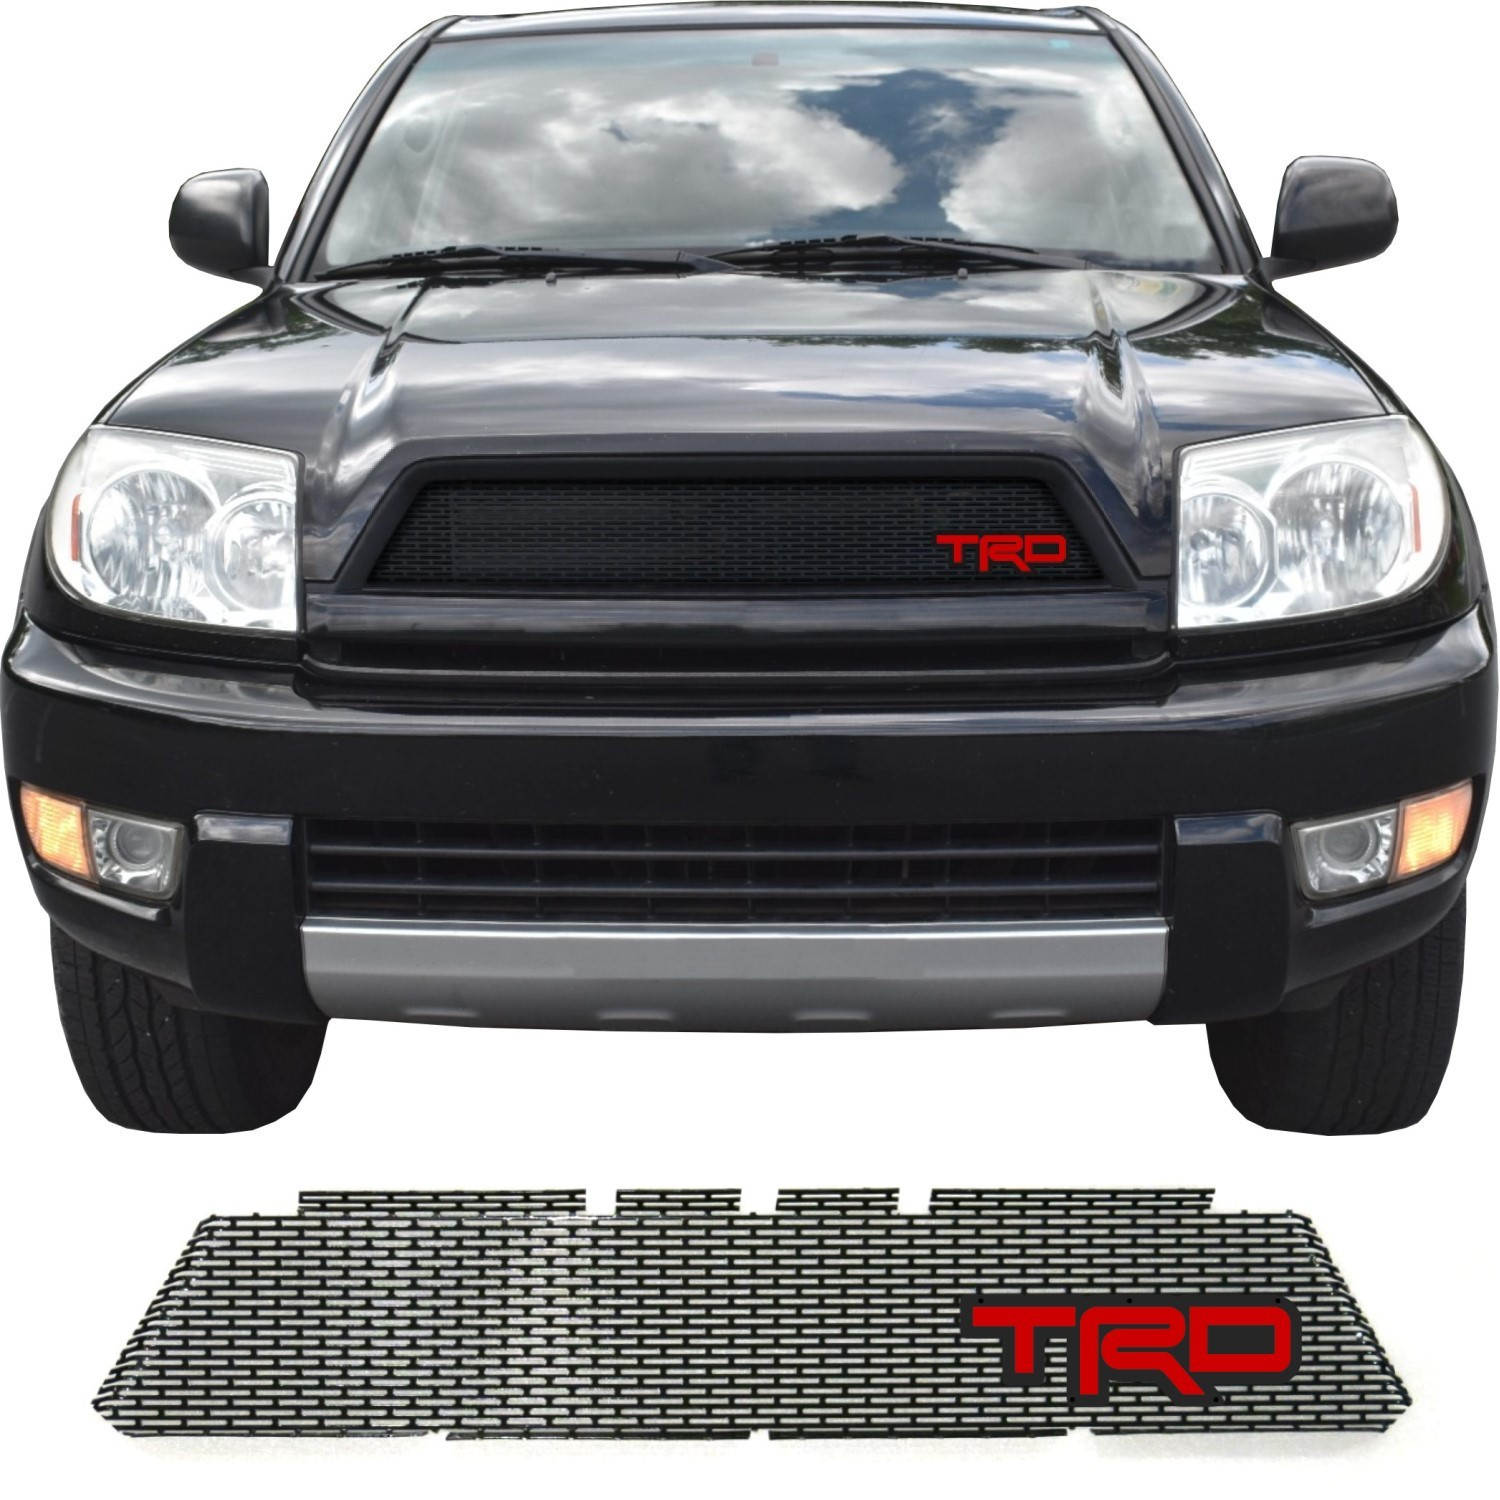 2003-05 Toyota 4Runner Grill Mesh with TRD Emblem